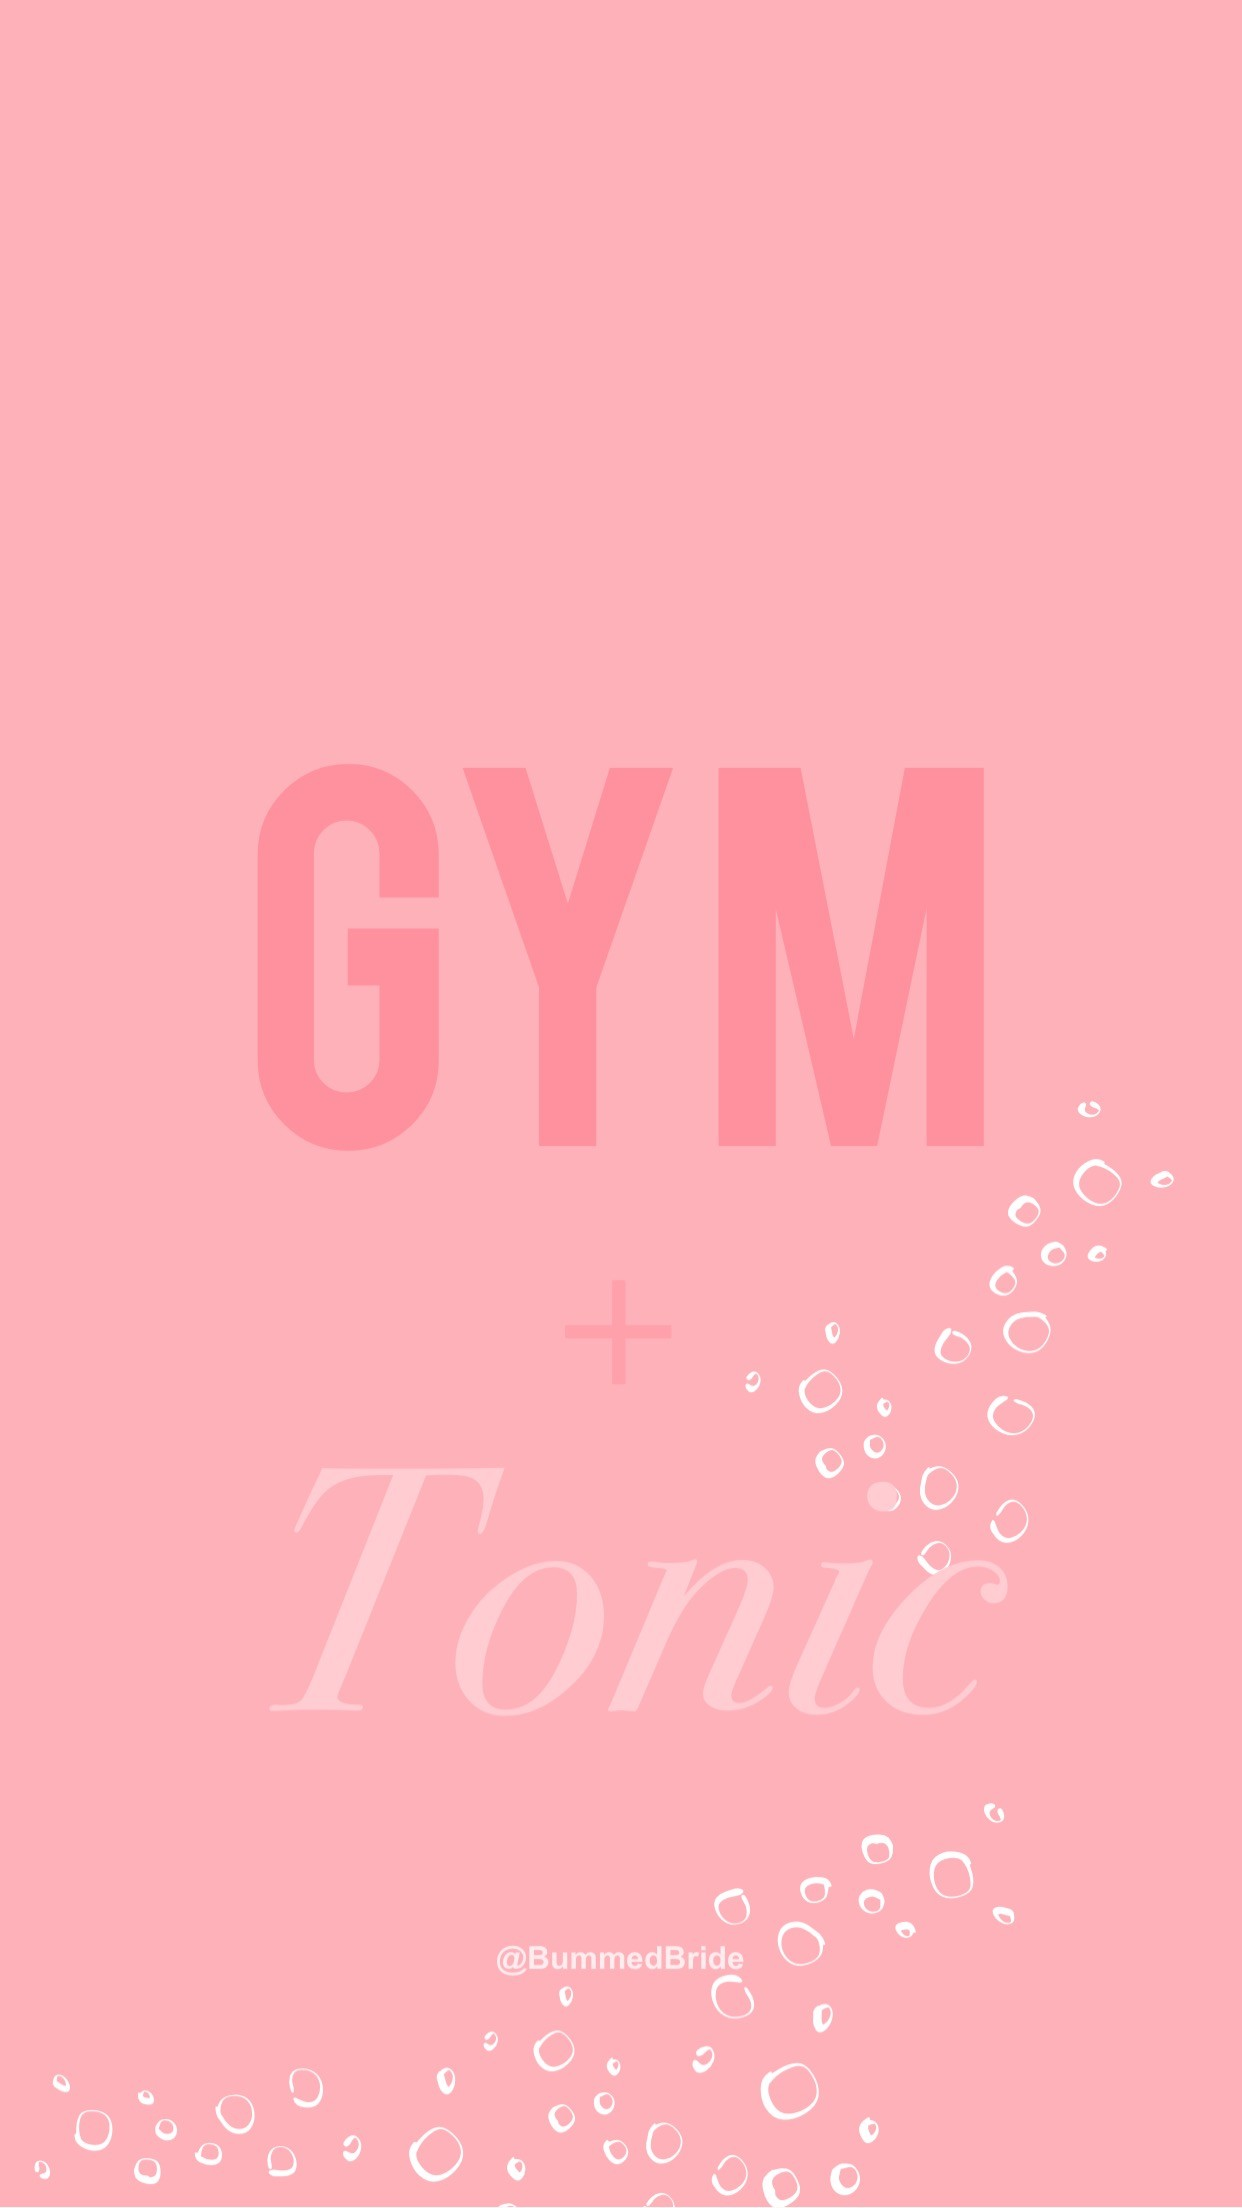 … gym and tonic wallpaper pink bummed bride (1) …